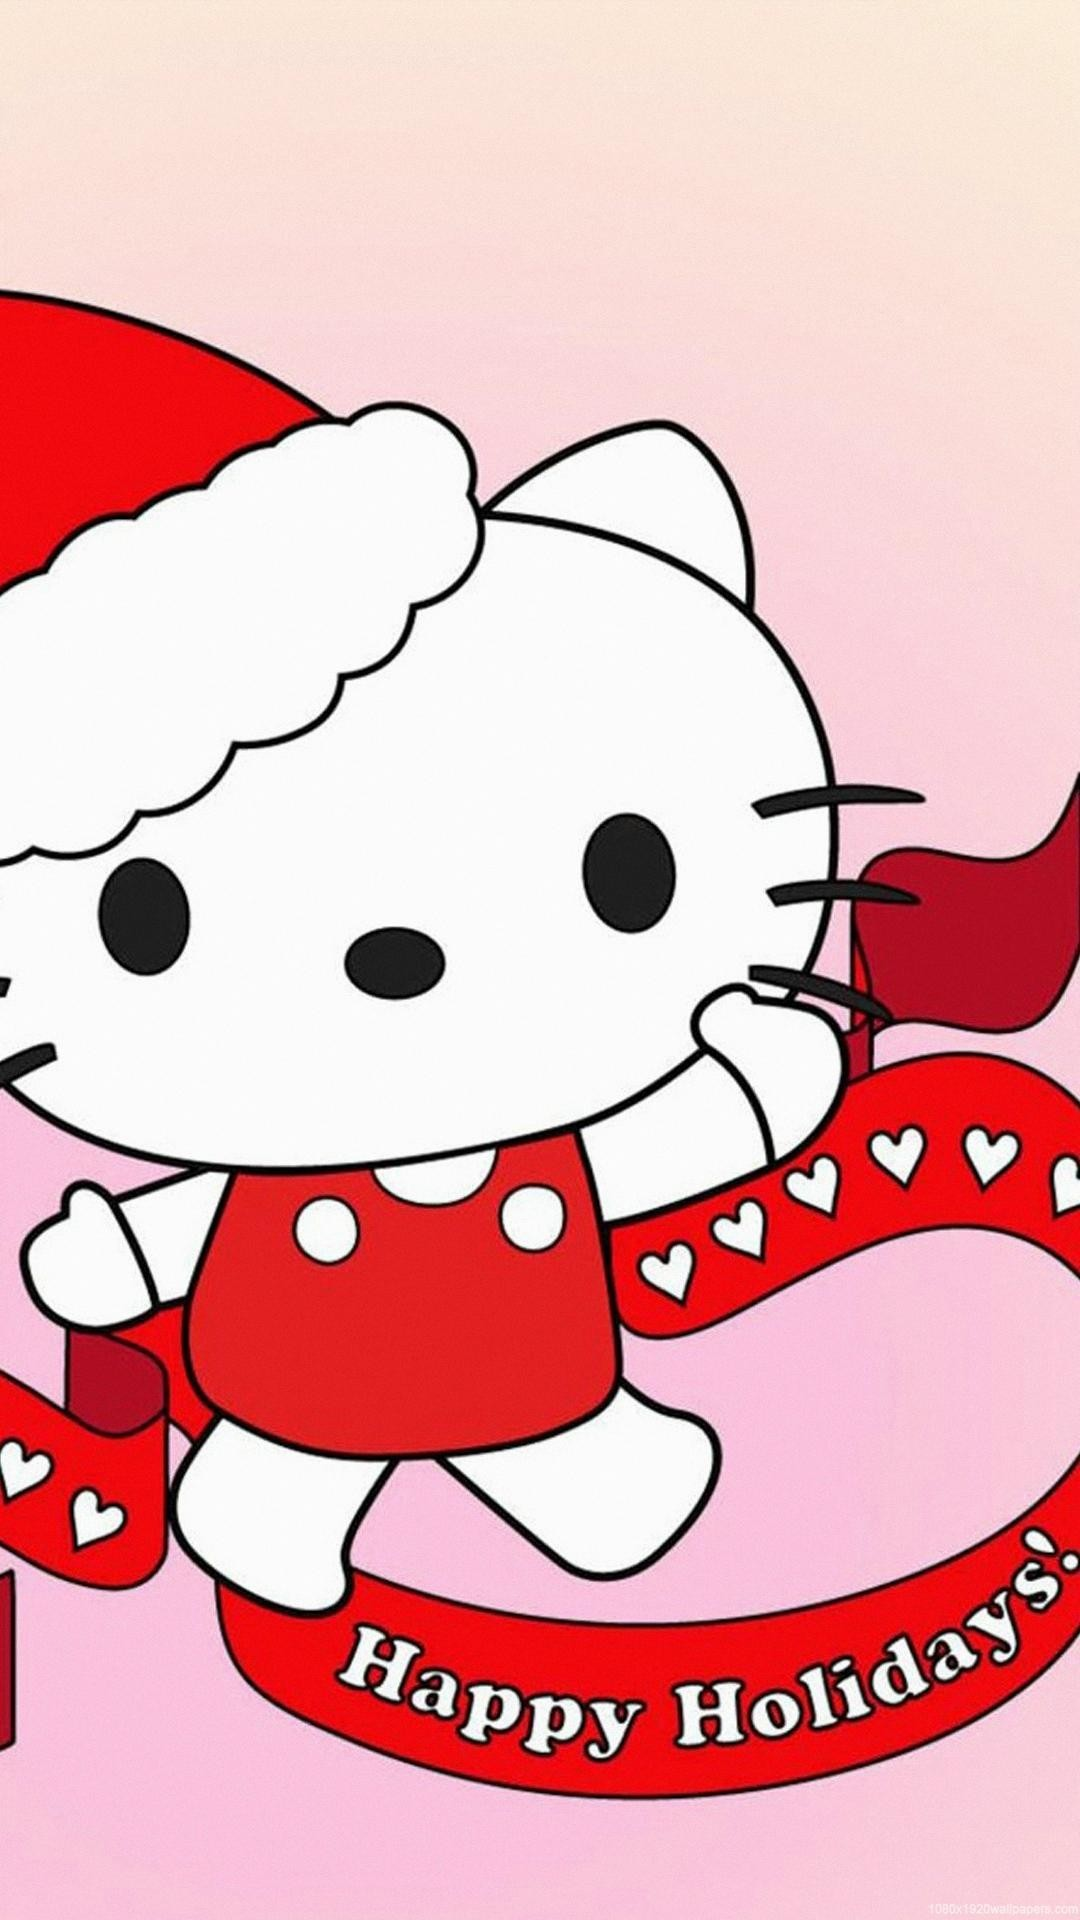 1080x1920 best-hello-kitty-screensavers-and-wallpapers -1080×1920-for-iphone-6-WTG3064200